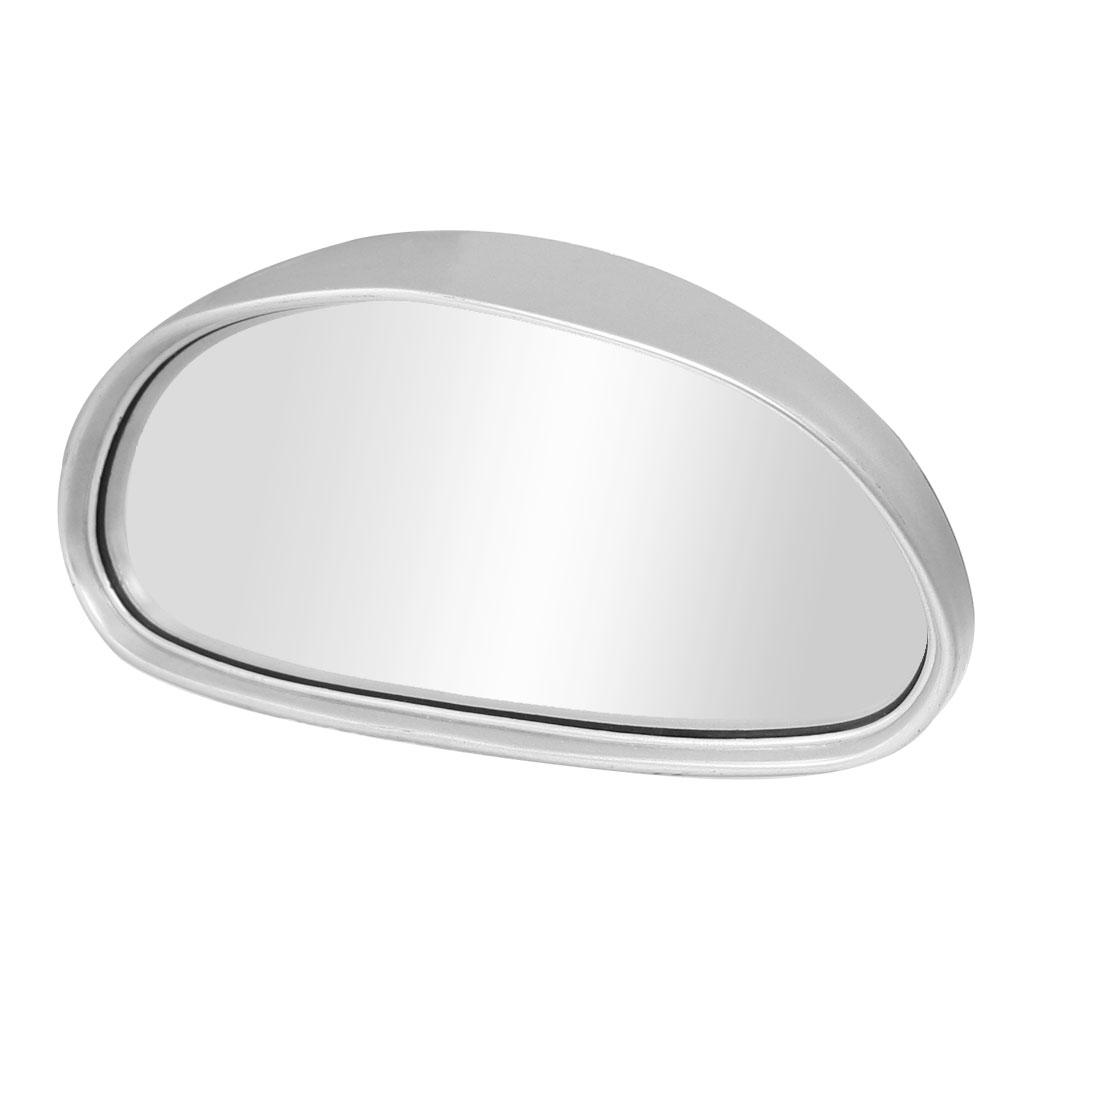 Father' s Day Gift l Unique Bargains Caravan Van Truck Car Auxiliary Rearvire Blind Spot Mirror Silver Tone